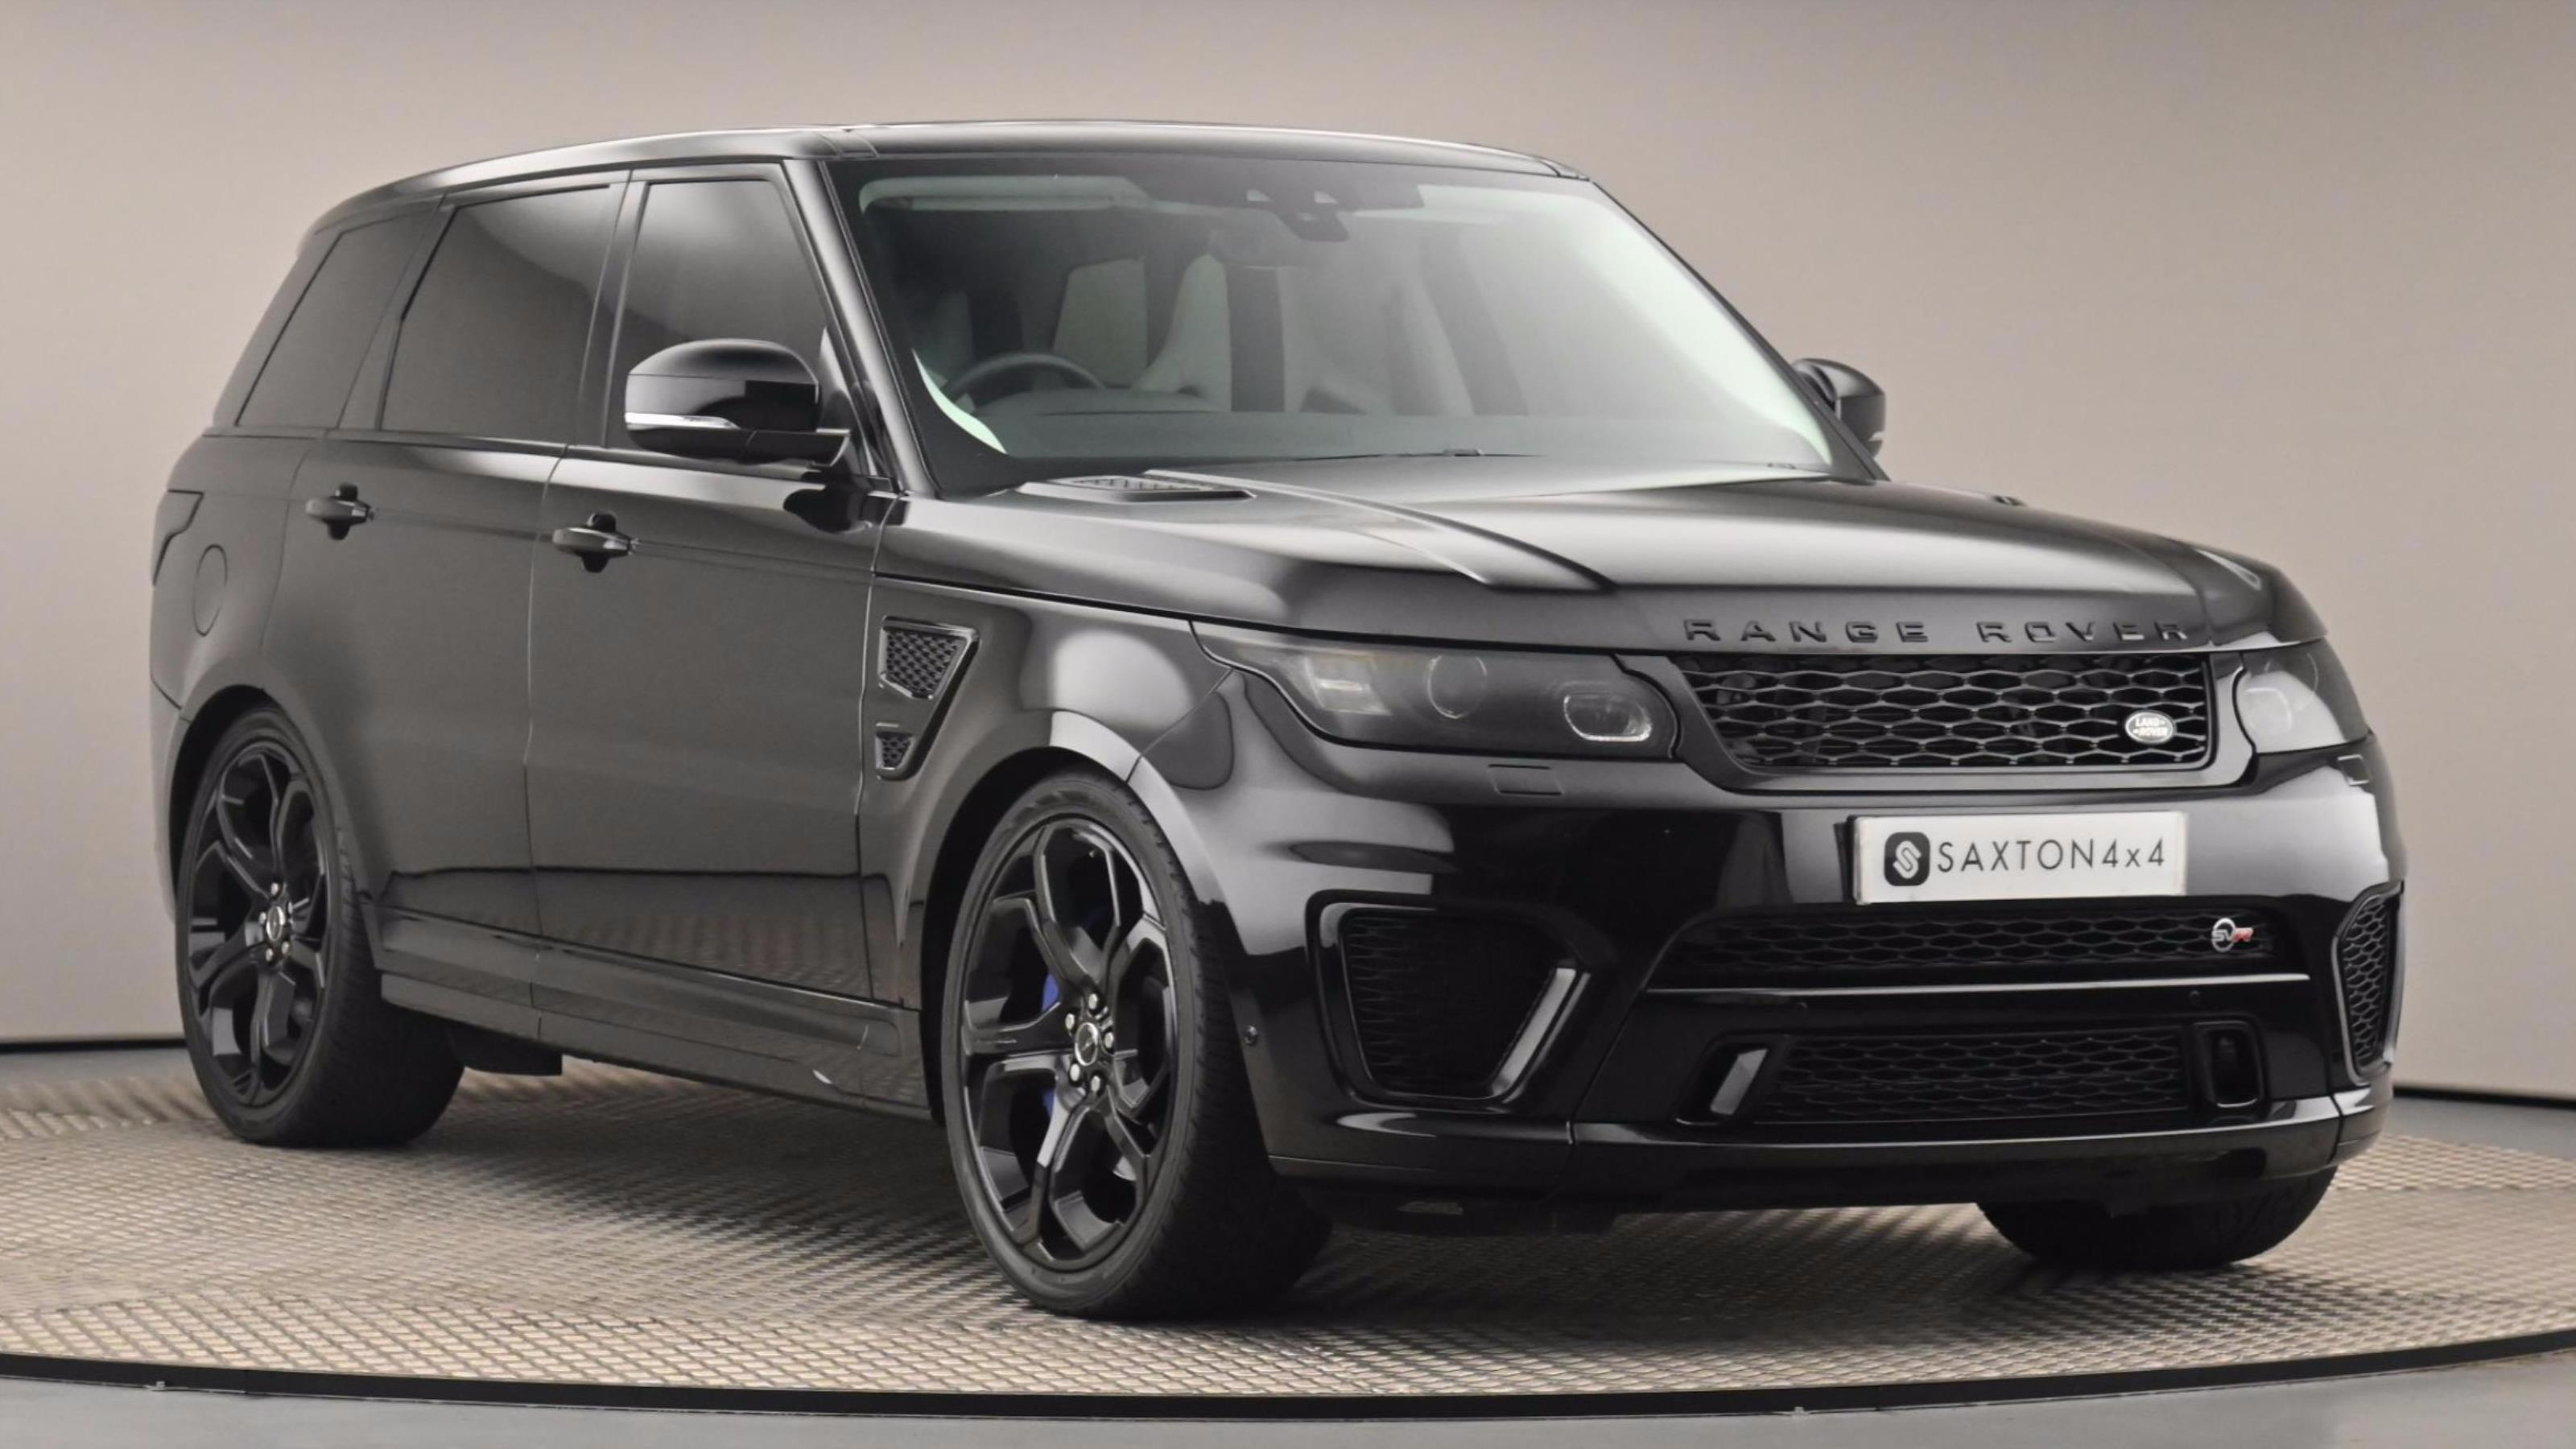 Used 2018 Land Rover Range Rover Sport SVR at Saxton4x4